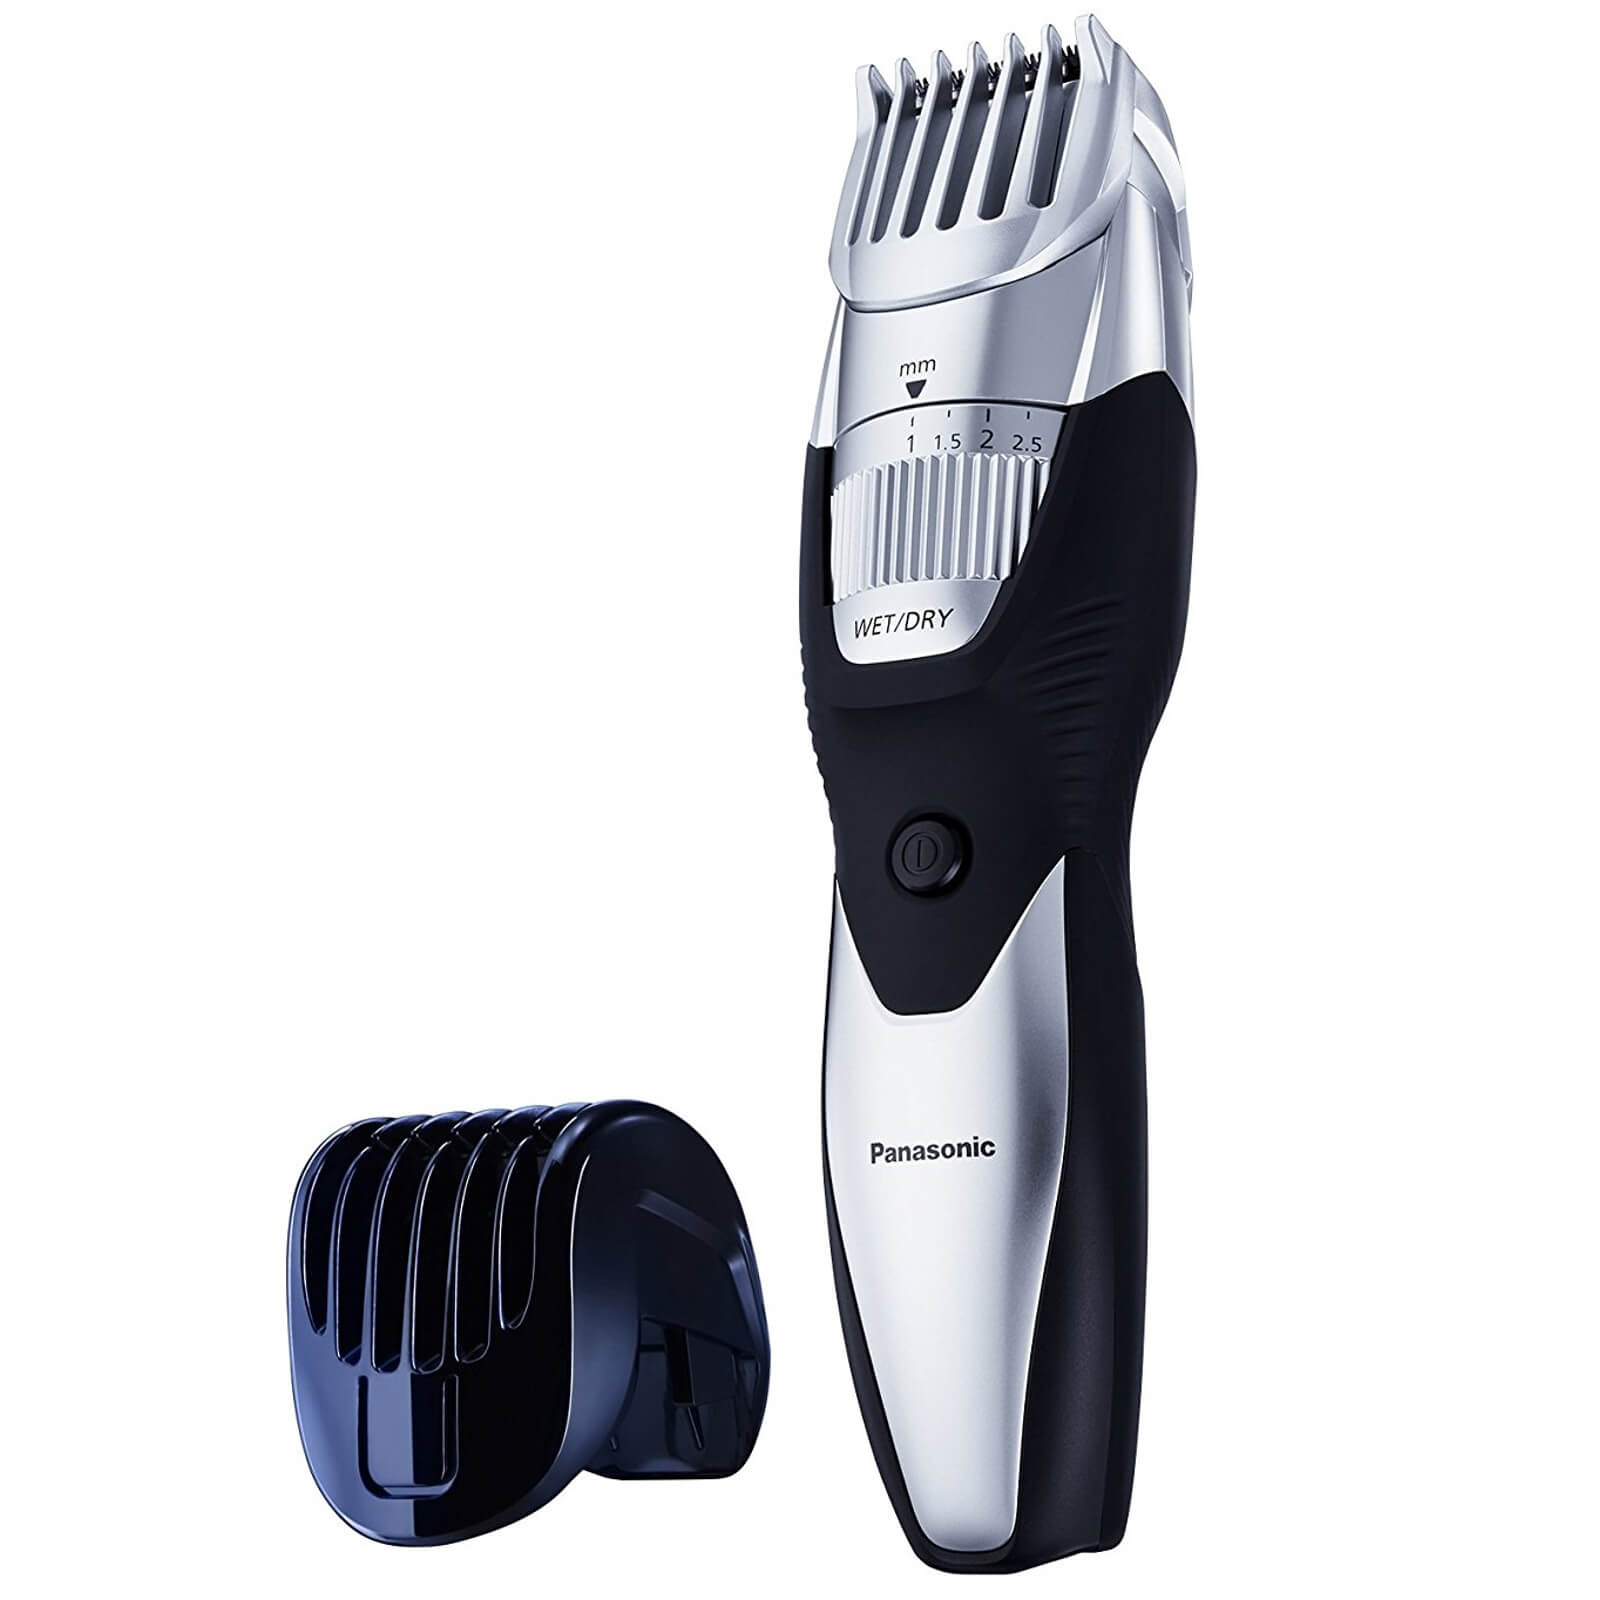 Panasonic ER-GB52 Wet and Dry Beard and Body Trimmer (19x Cutting Lenghts, Body Attachment) - Black